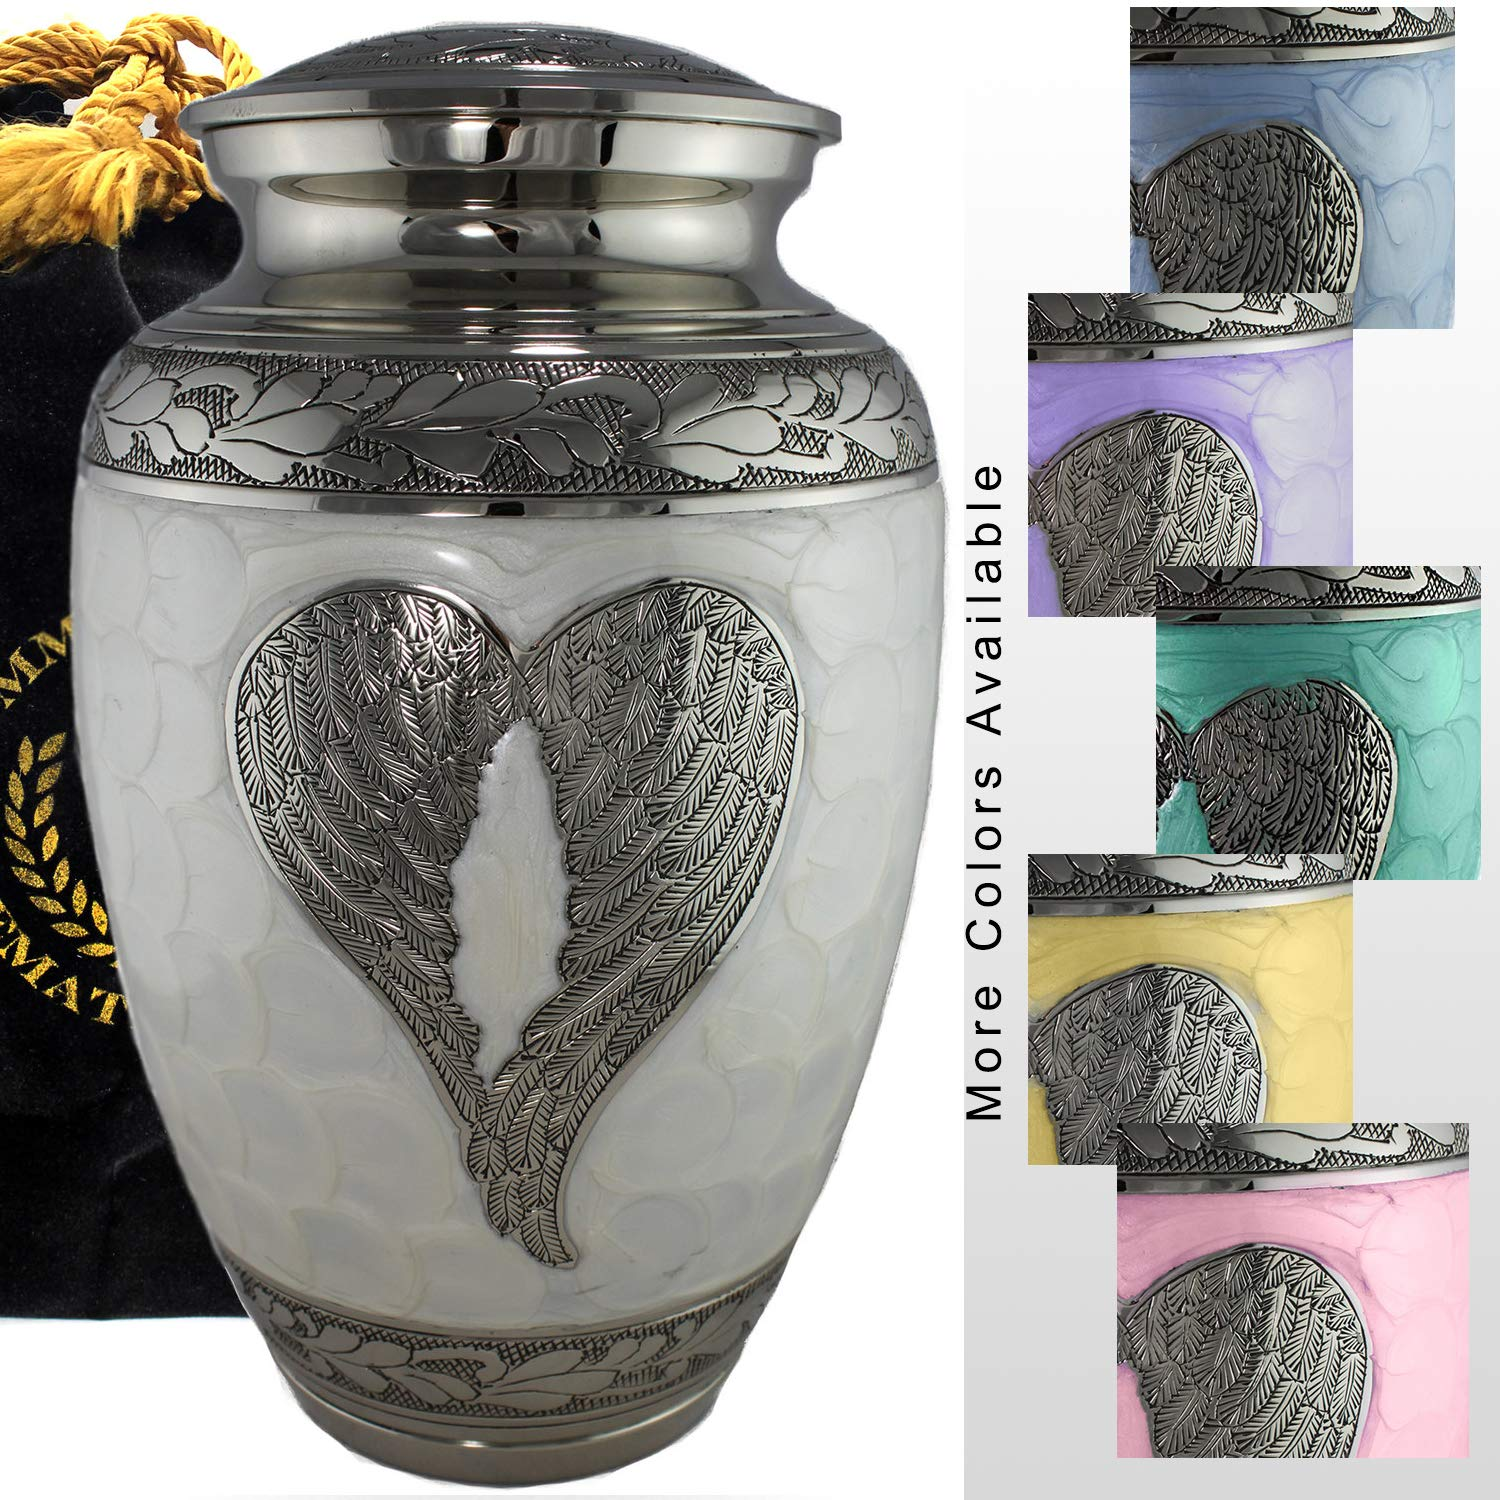 Loving Angel - White/Silver Cremation Urns for Human Ashes Adult for Funeral, Burial, Columbarium or Home, Cremation Urns for Human Ashes Adult 200 Cubic inches, Urns for Ashes (Large/Adult) by Commemorative Cremation Urns